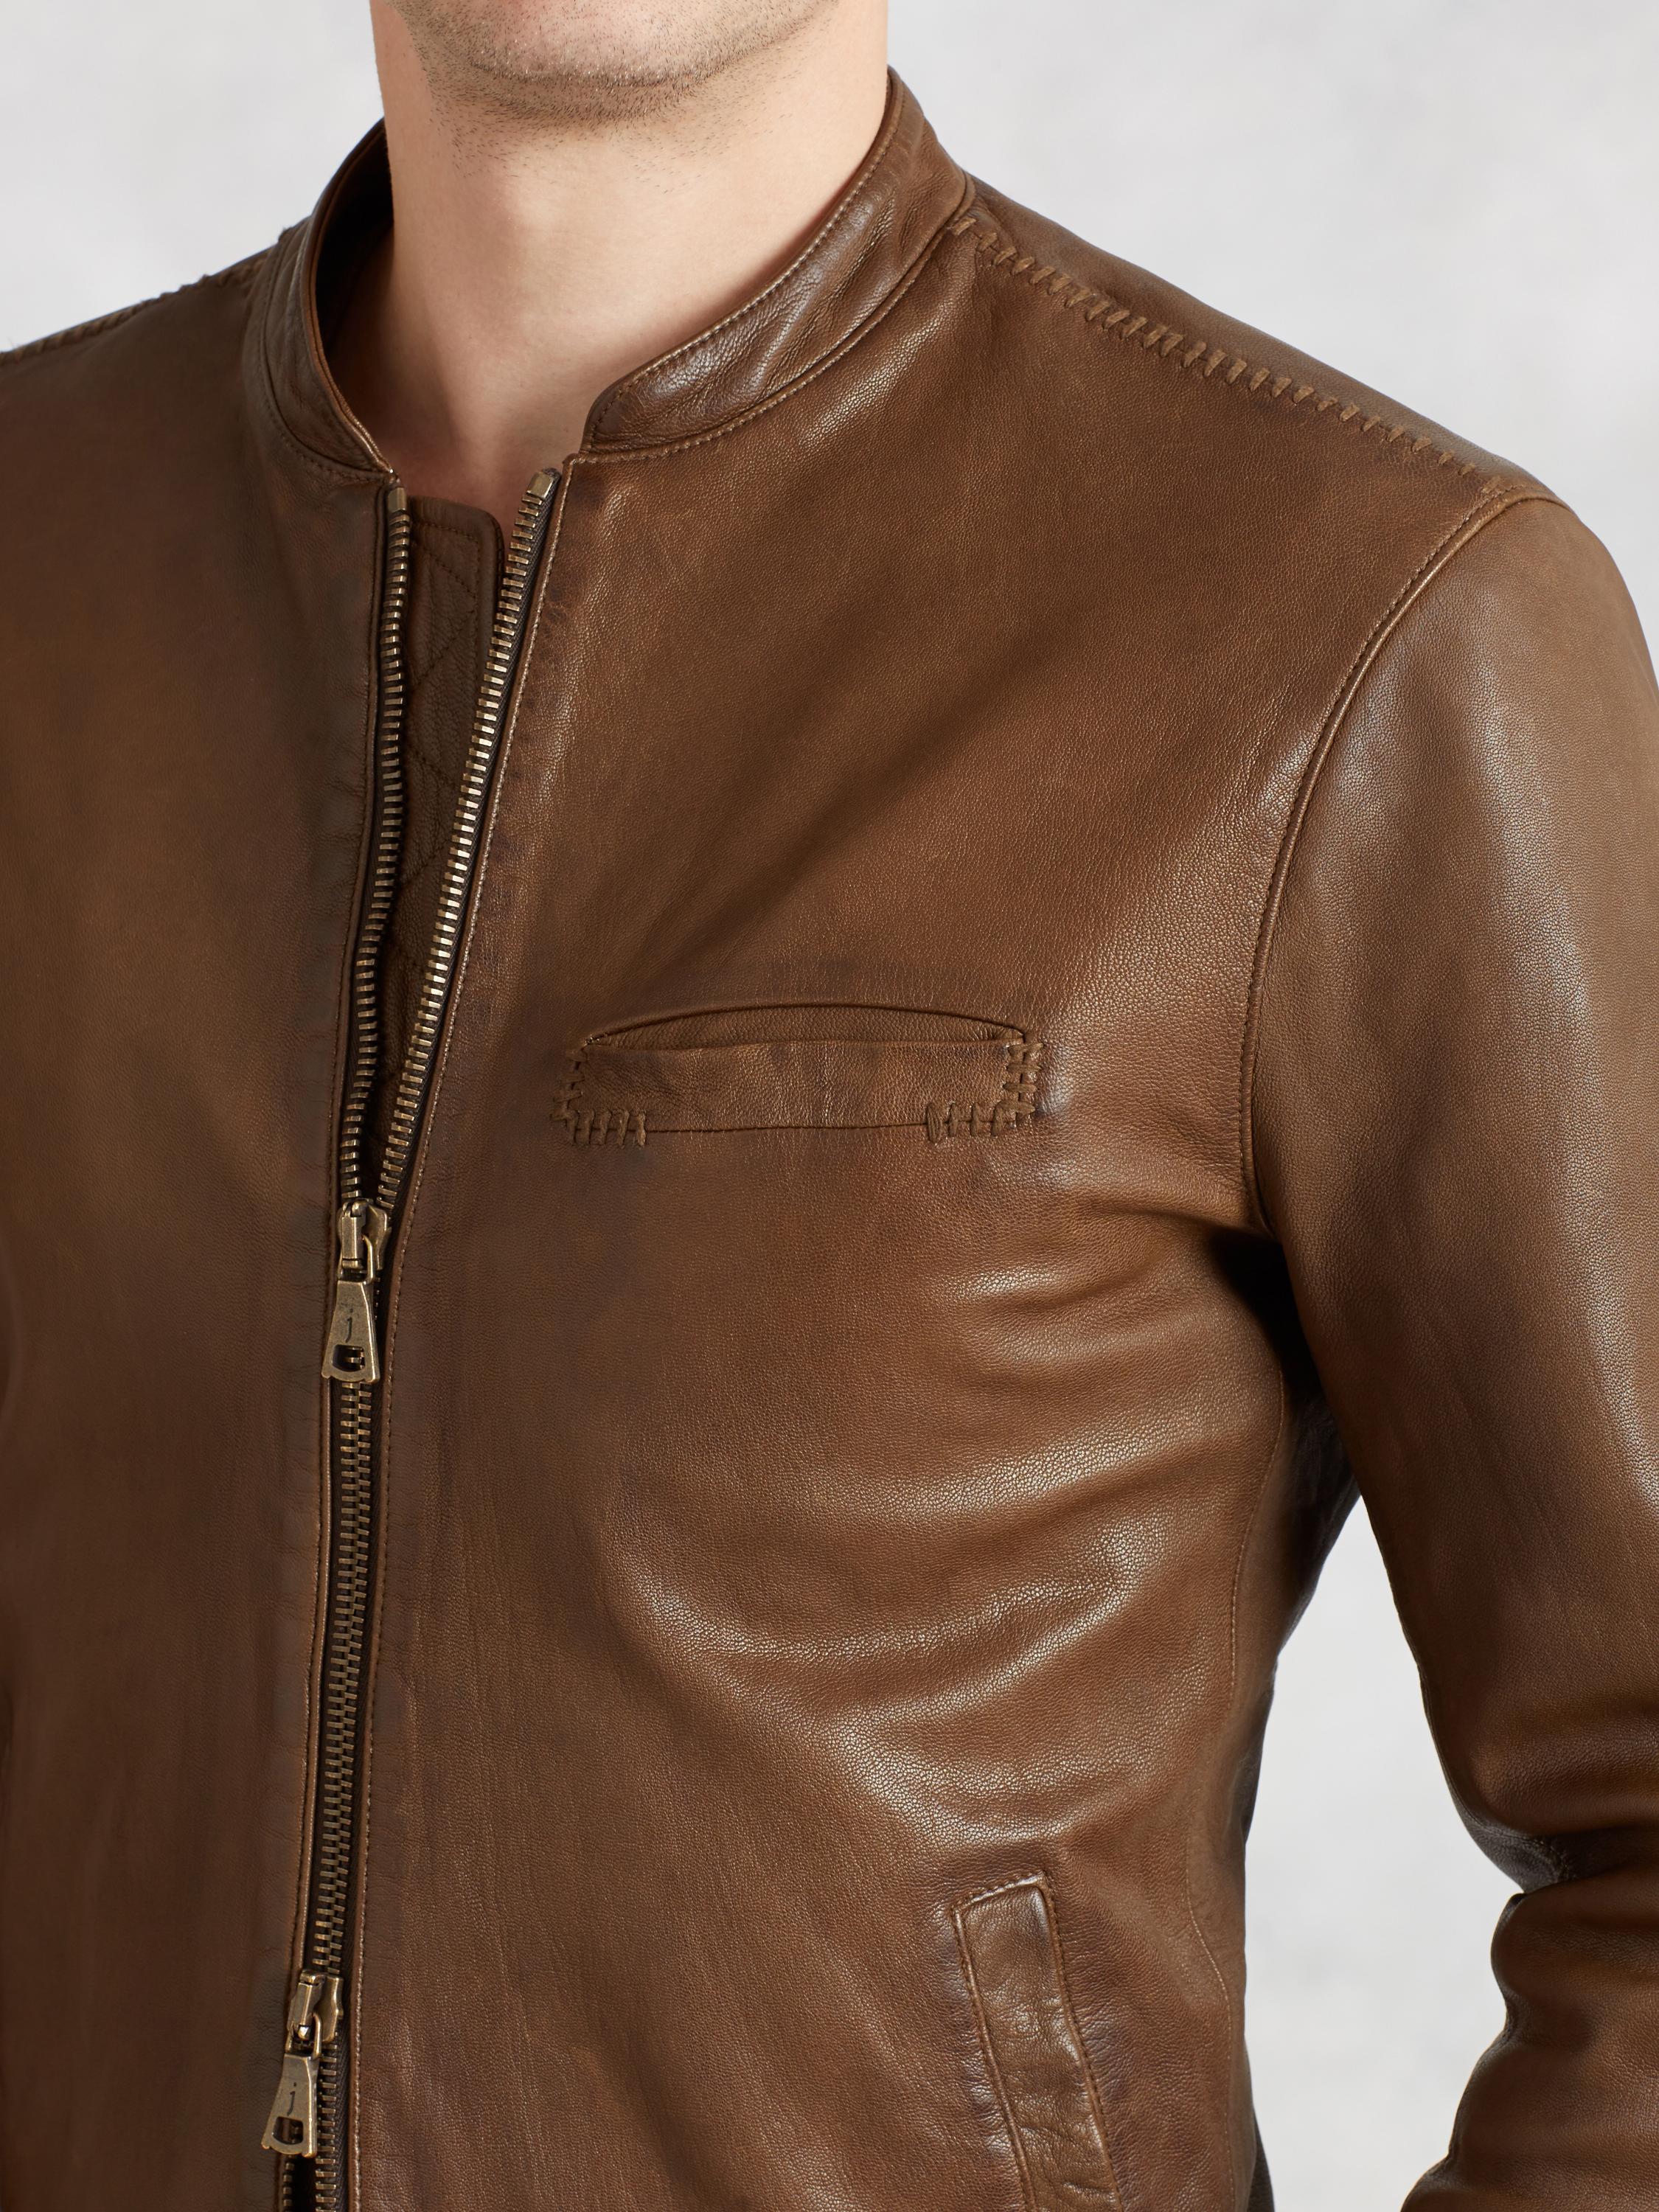 John varvatos Repair Stitch Leather Jacket in Brown for ...